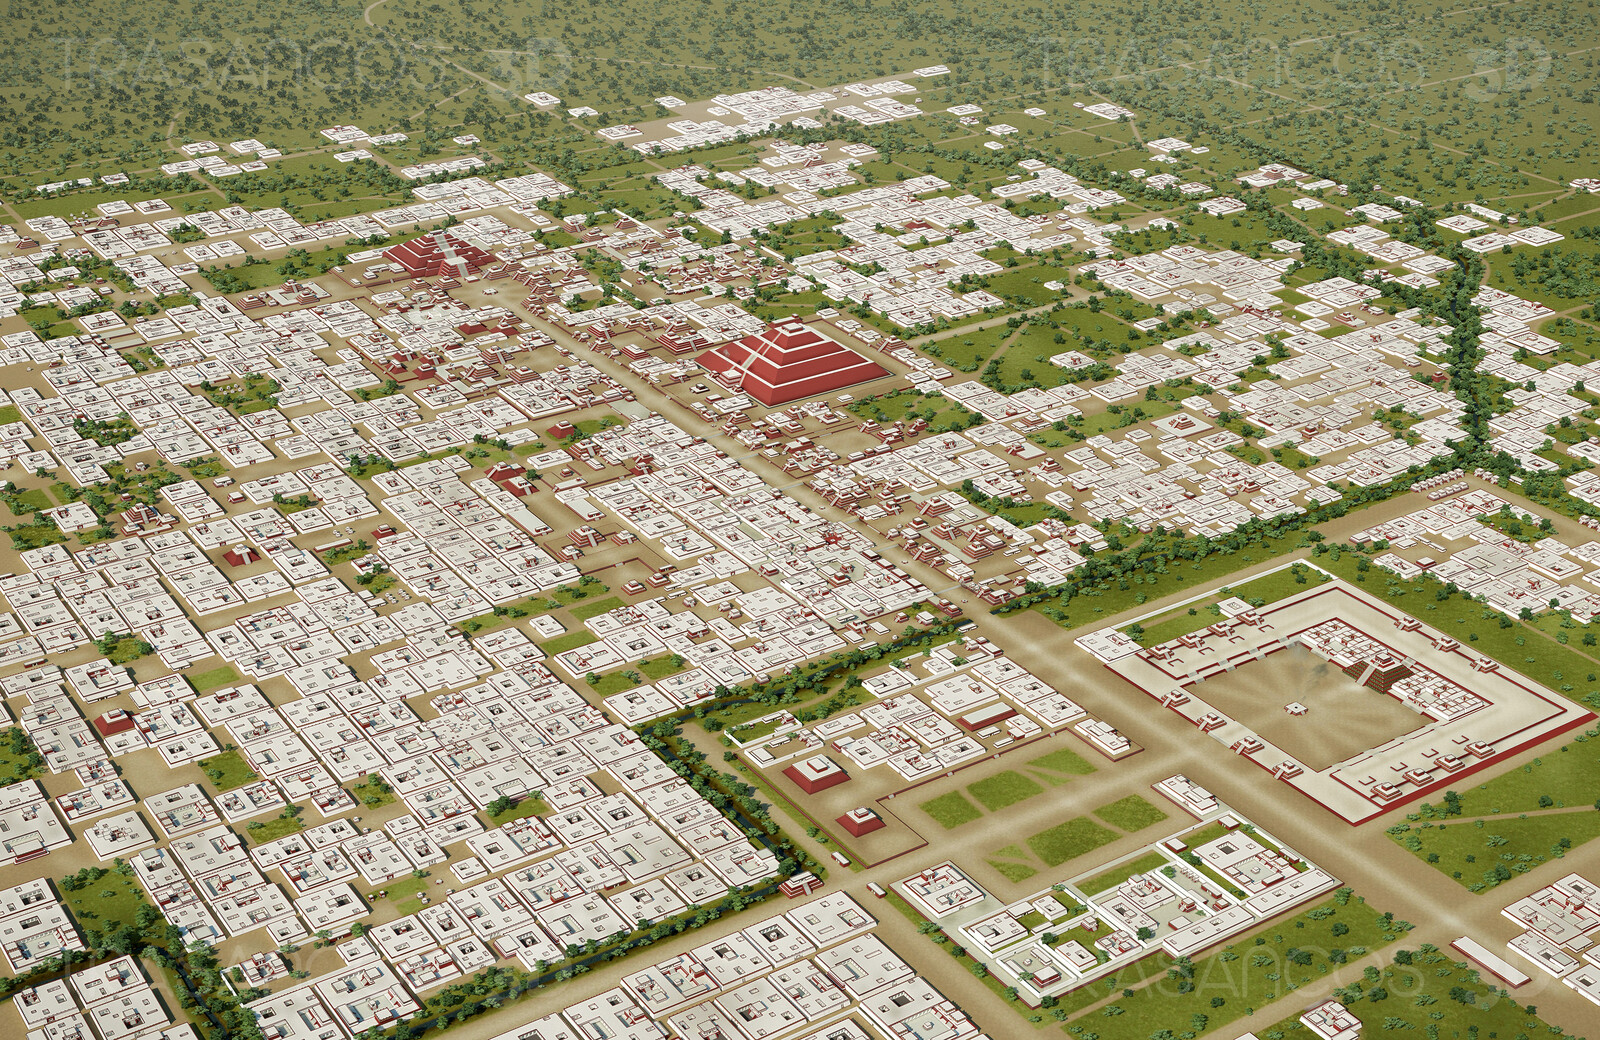 General view of the ancient city of Tehotihuacan in actual Mexico. Modeled in collaboration with: - Andrés Armesto - Alejandro Soriano - Carlos Paz - Diego Blanco